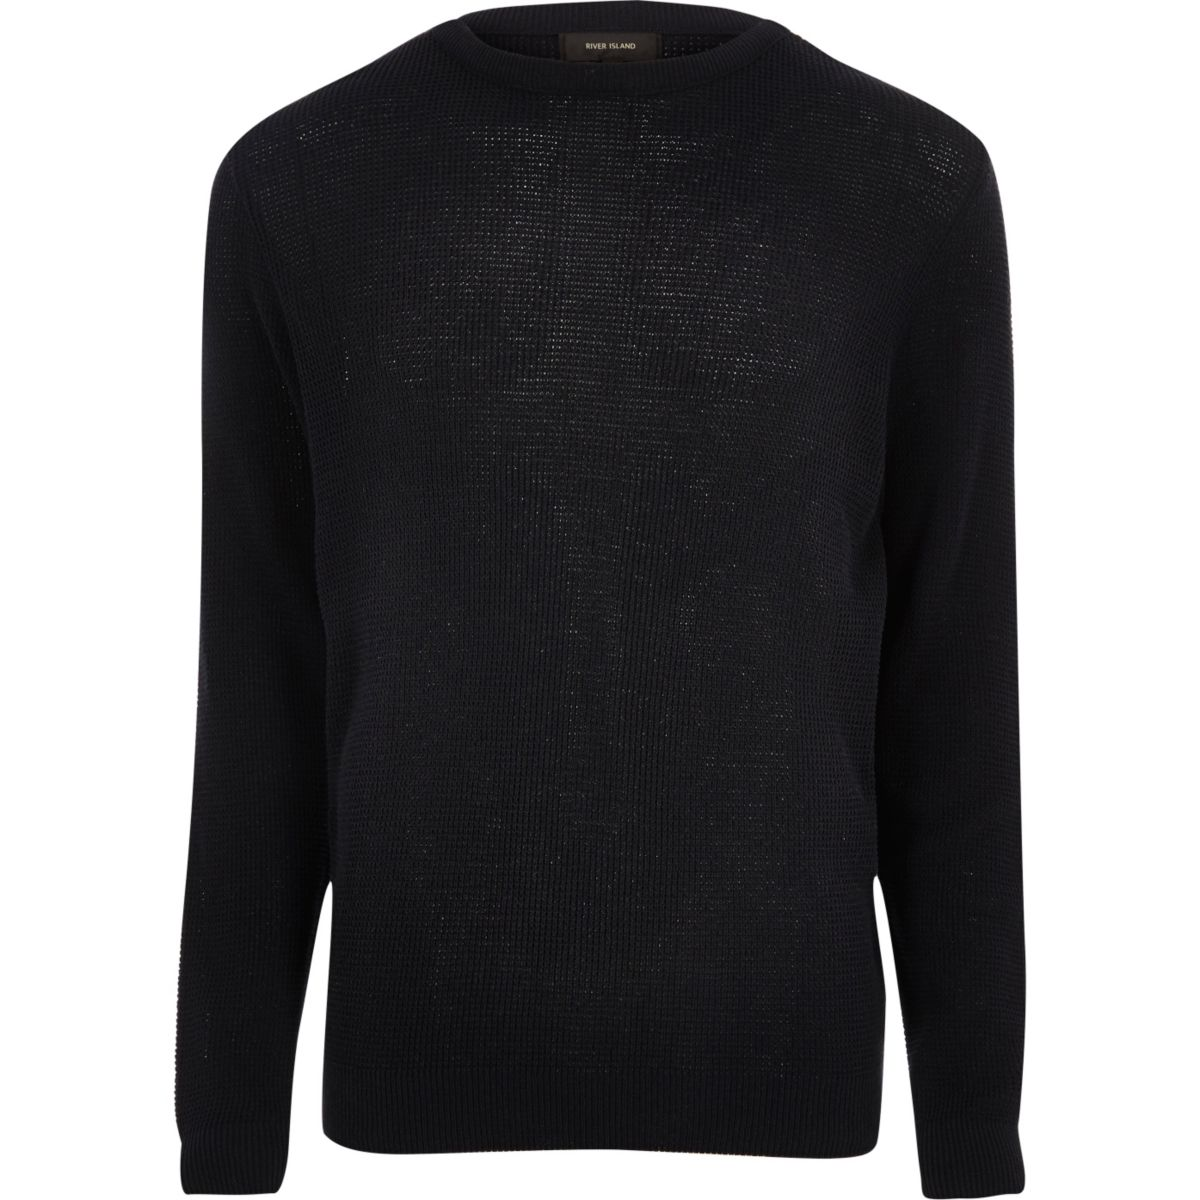 Navy textured knit slim fit crew neck sweater